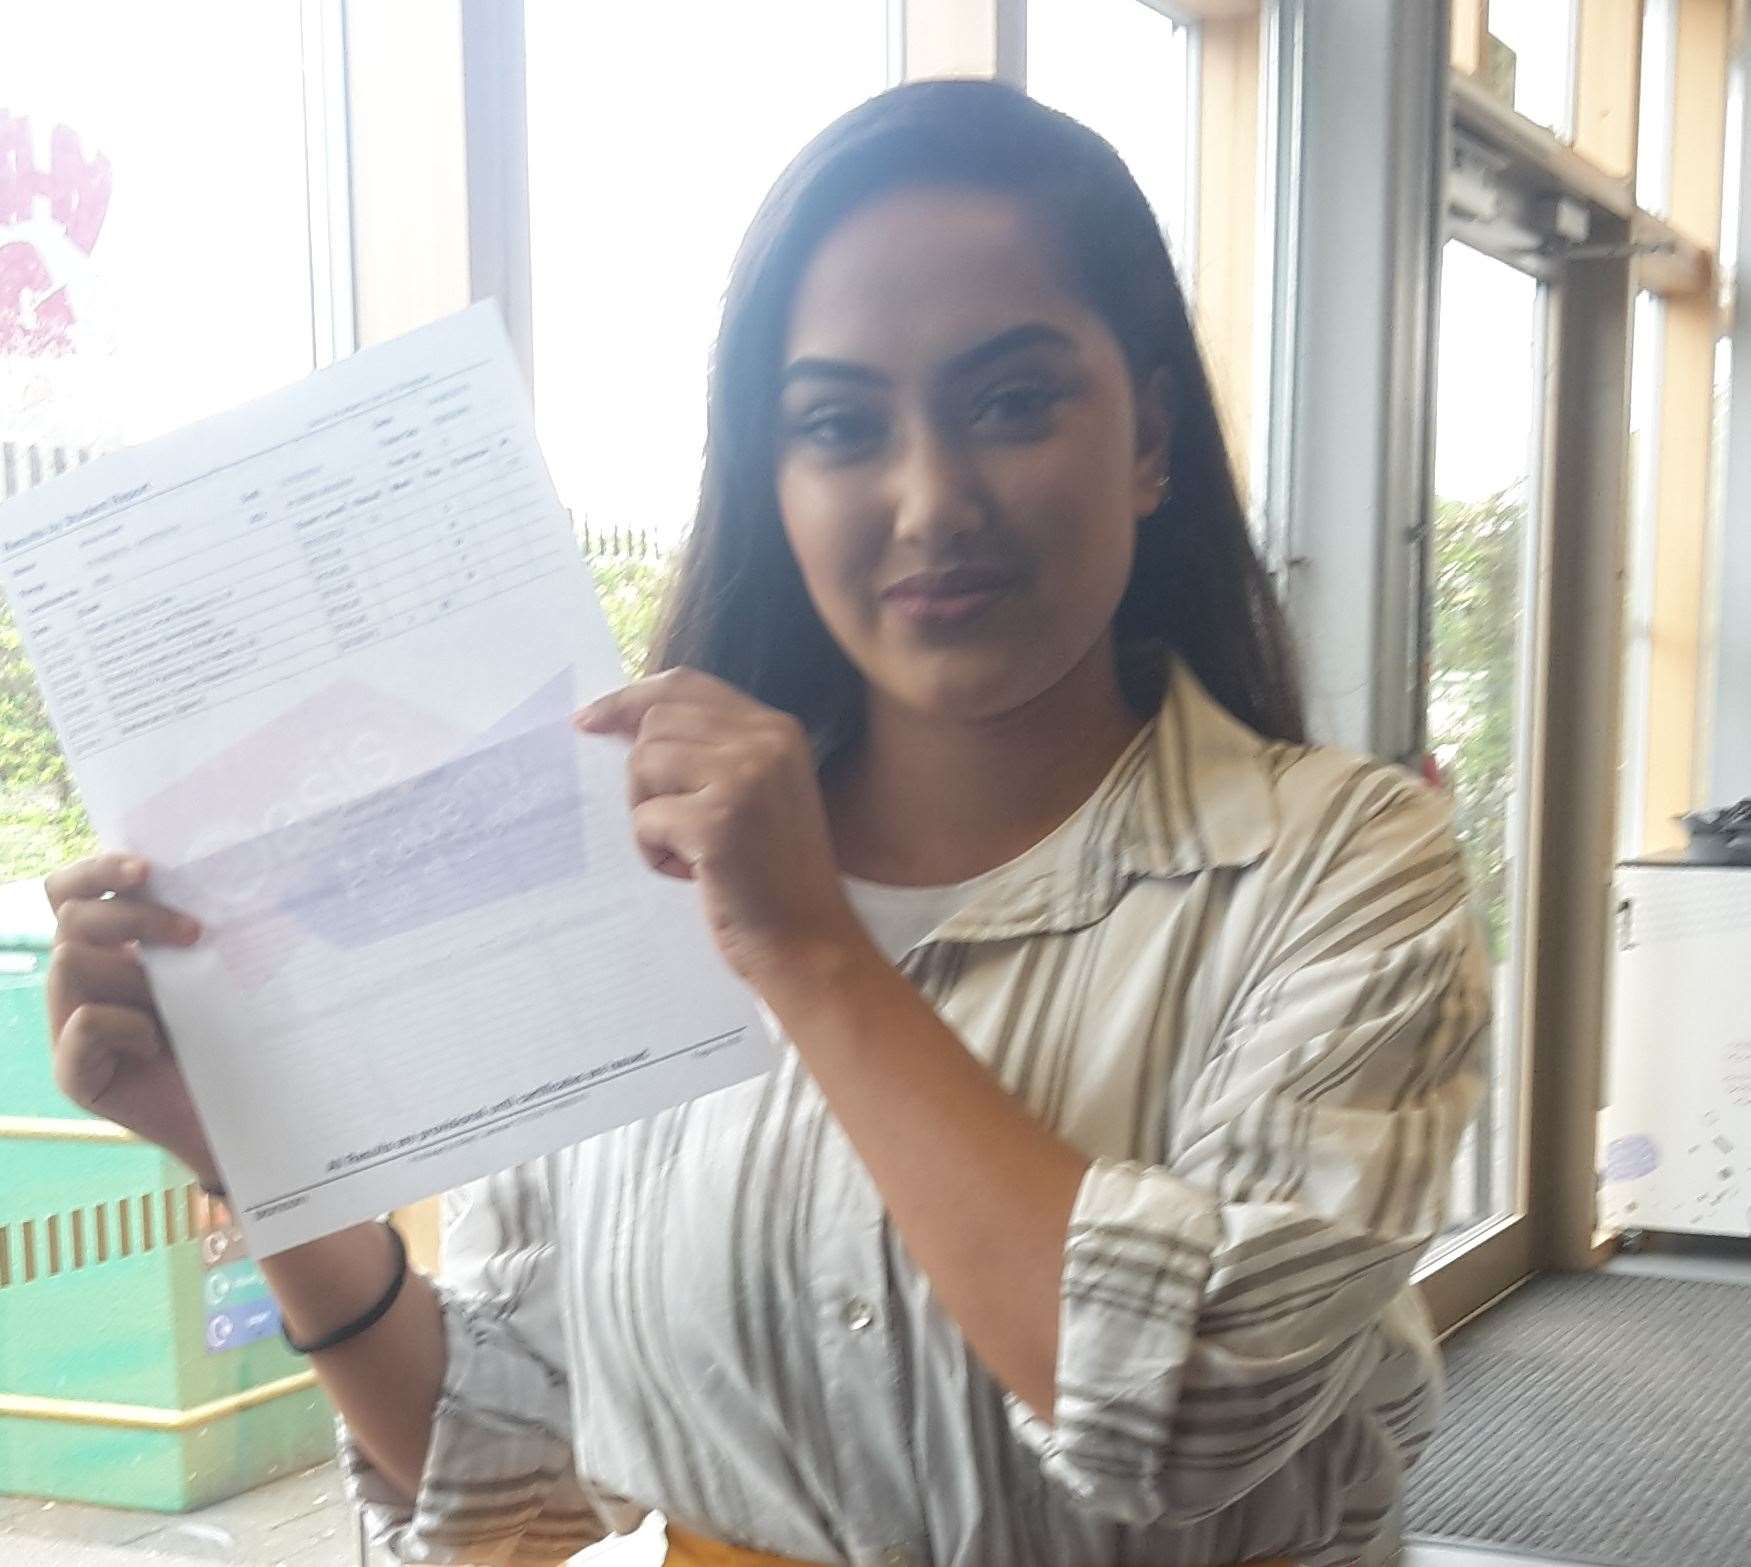 Oasis Academy student Anisa Islam, 18, with her A-level results